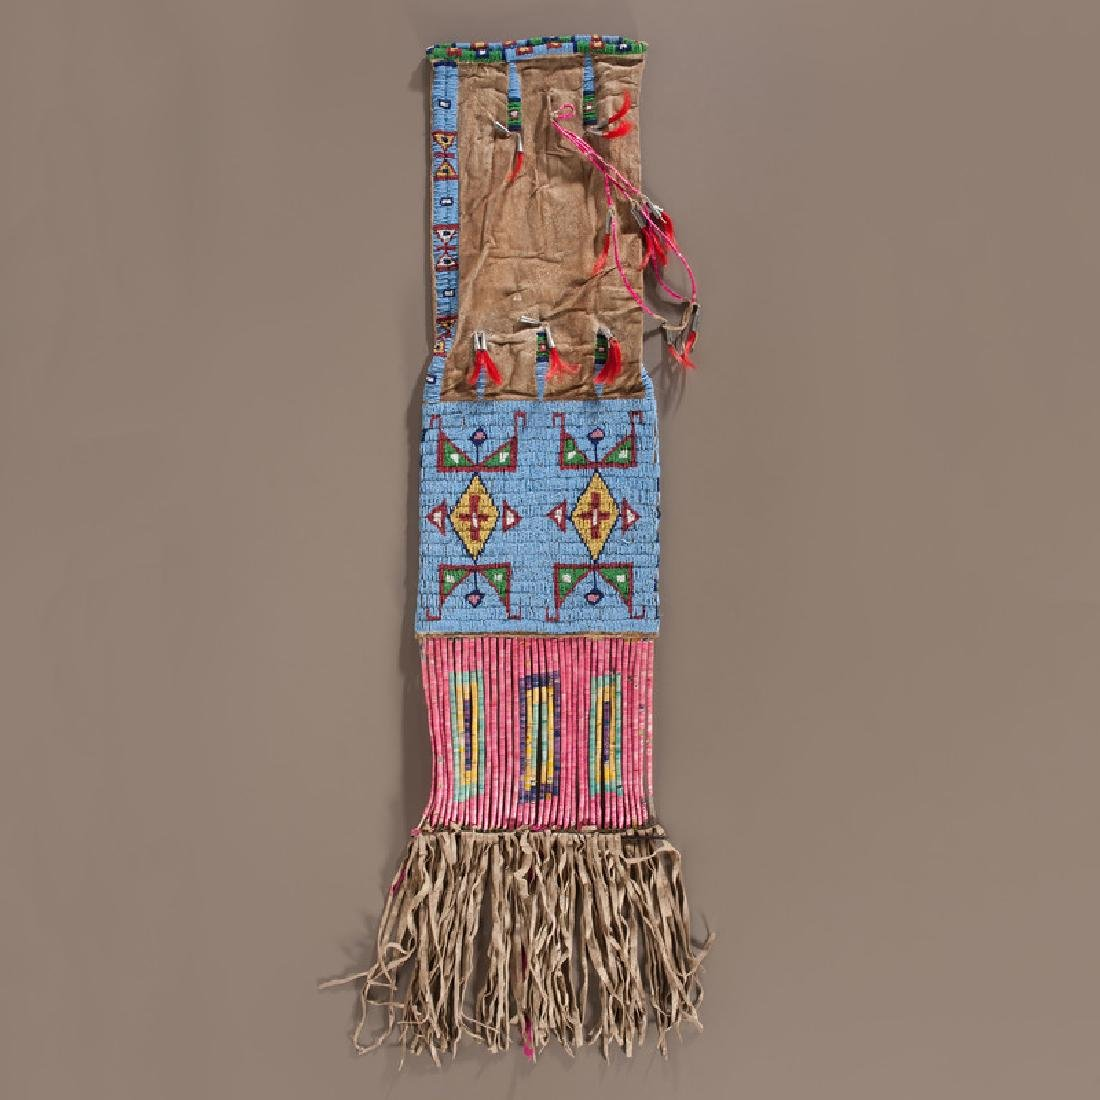 Sioux Beaded and Quilled Hide Tobacco Bag, Collected by